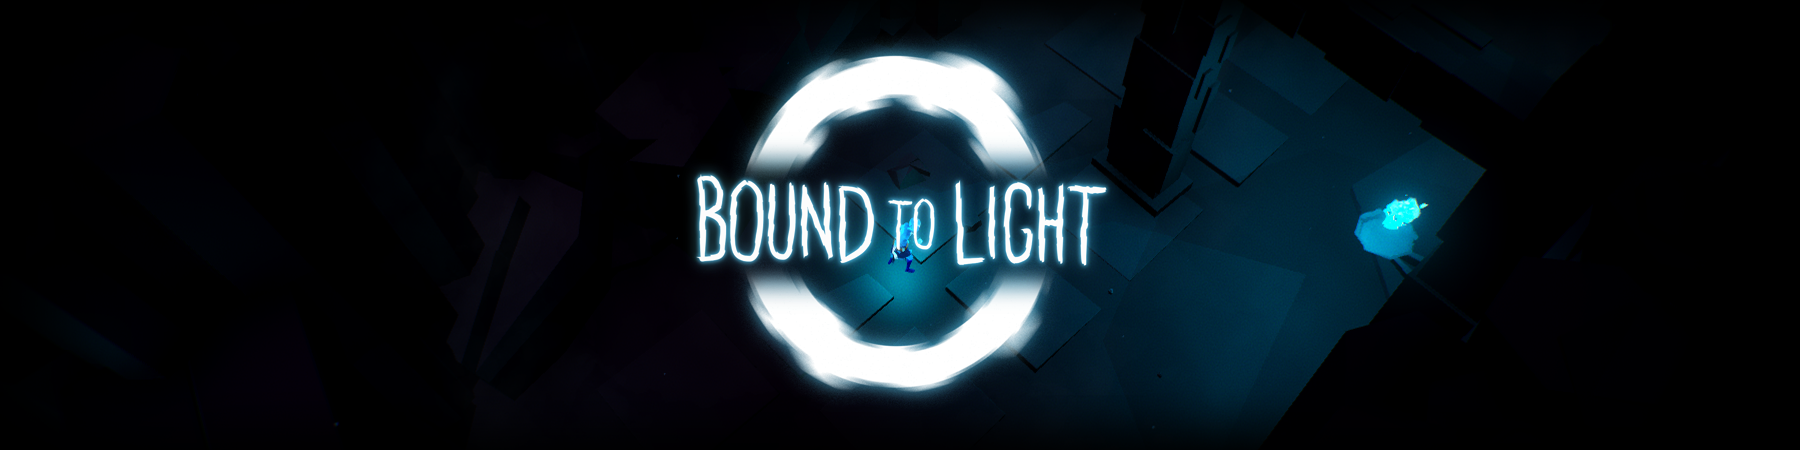 Bound To Light